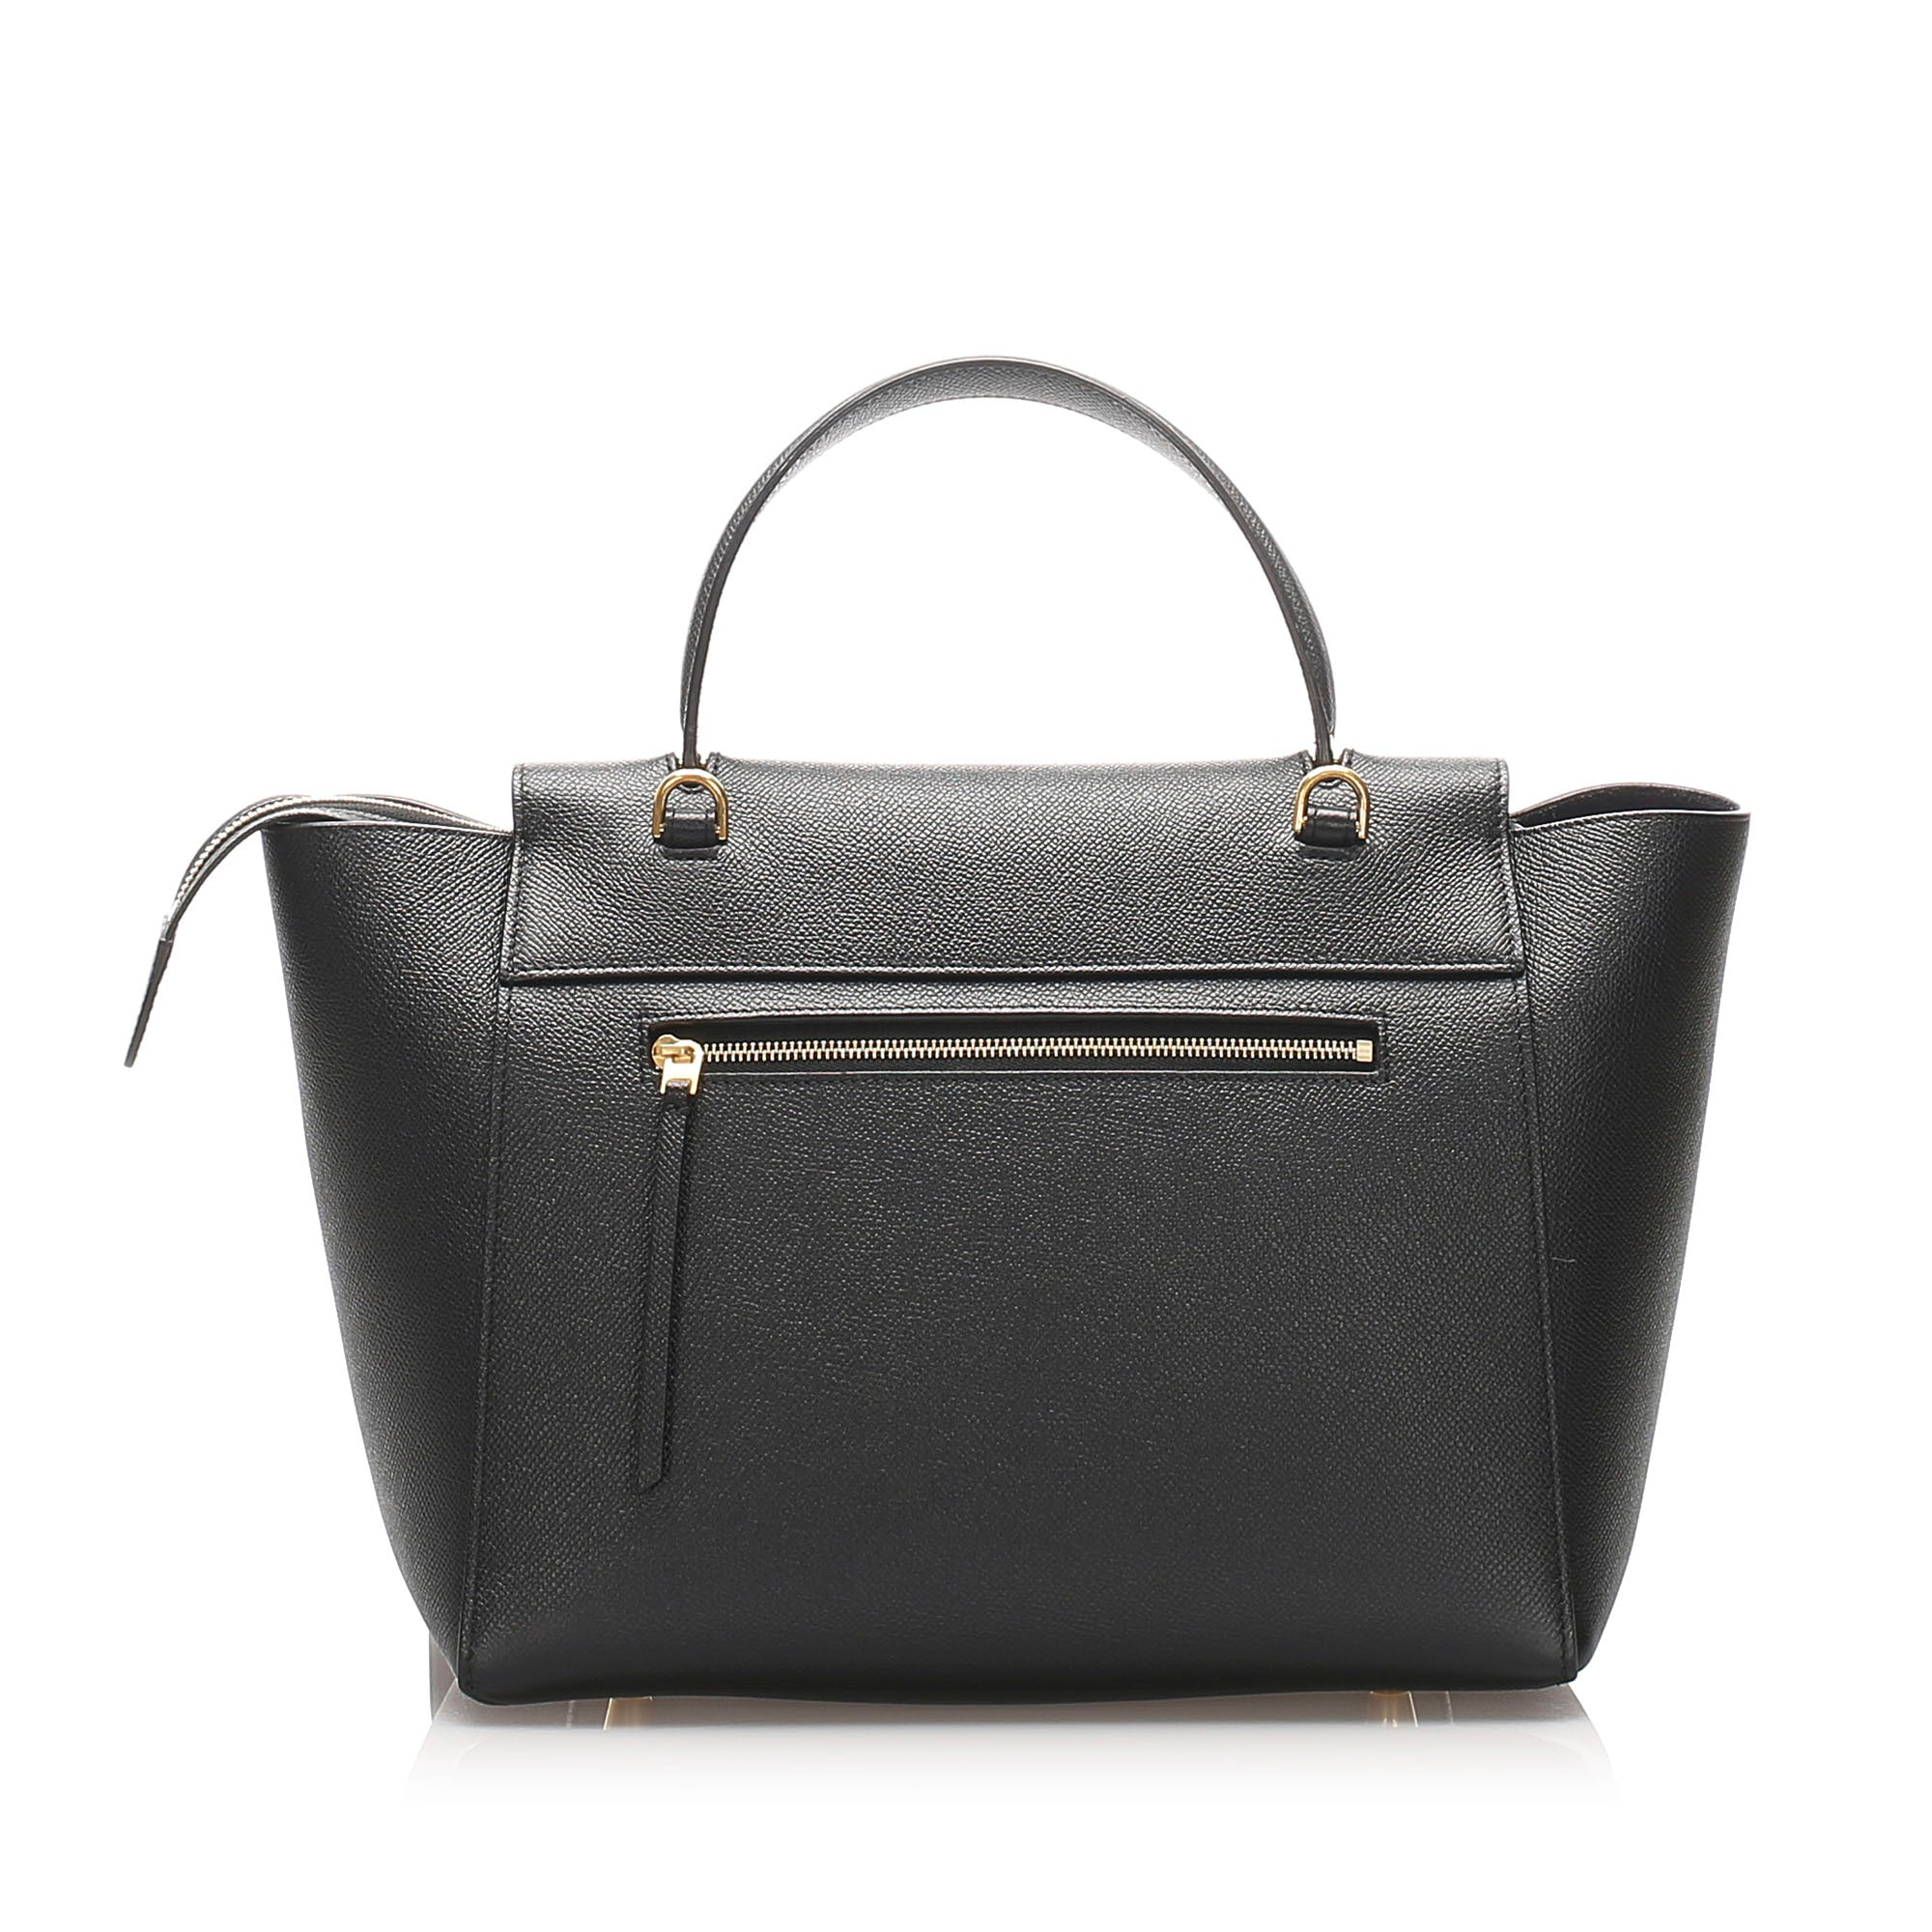 Celine Black Mini Belt Leather Satchel